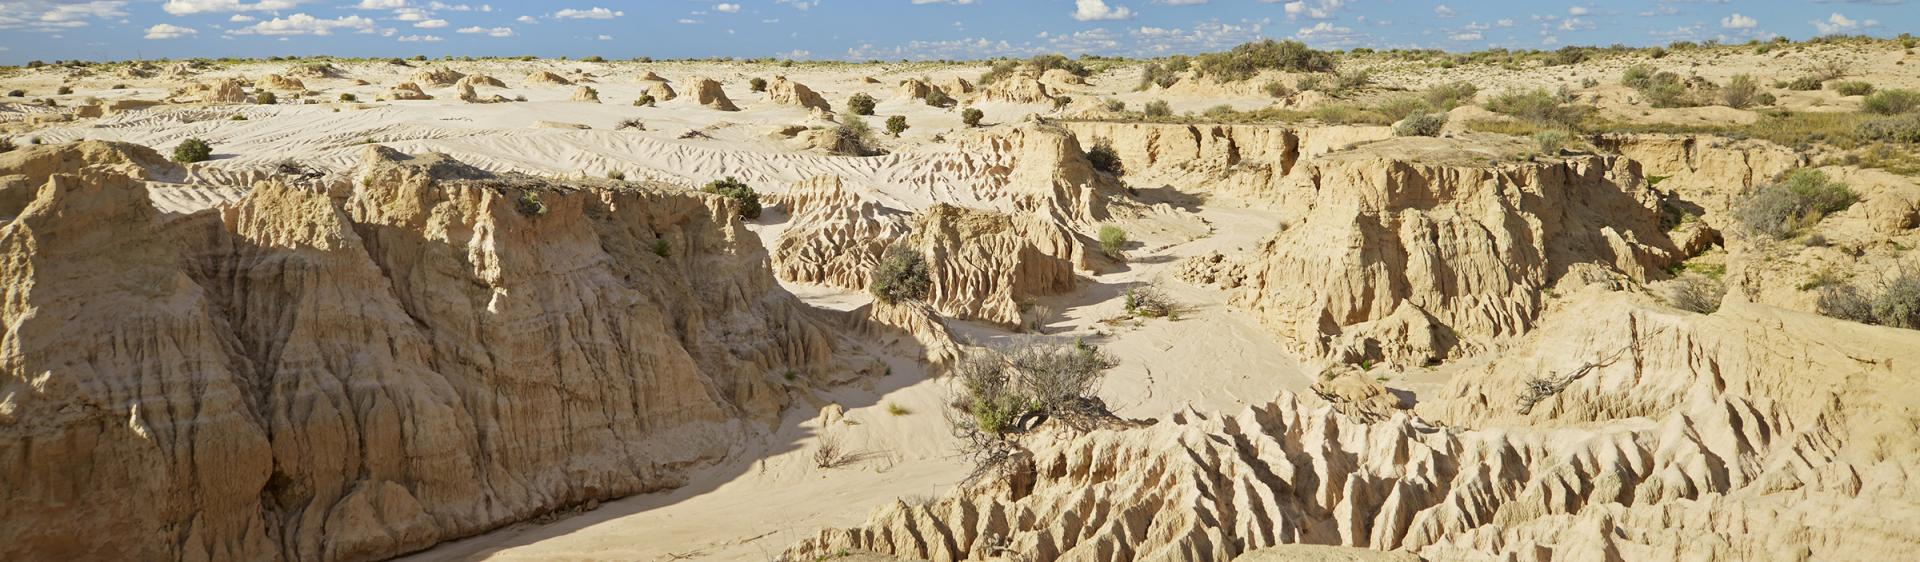 蒙哥国家公园 (Mungo National Park) 的中国墙 (Walls of China)